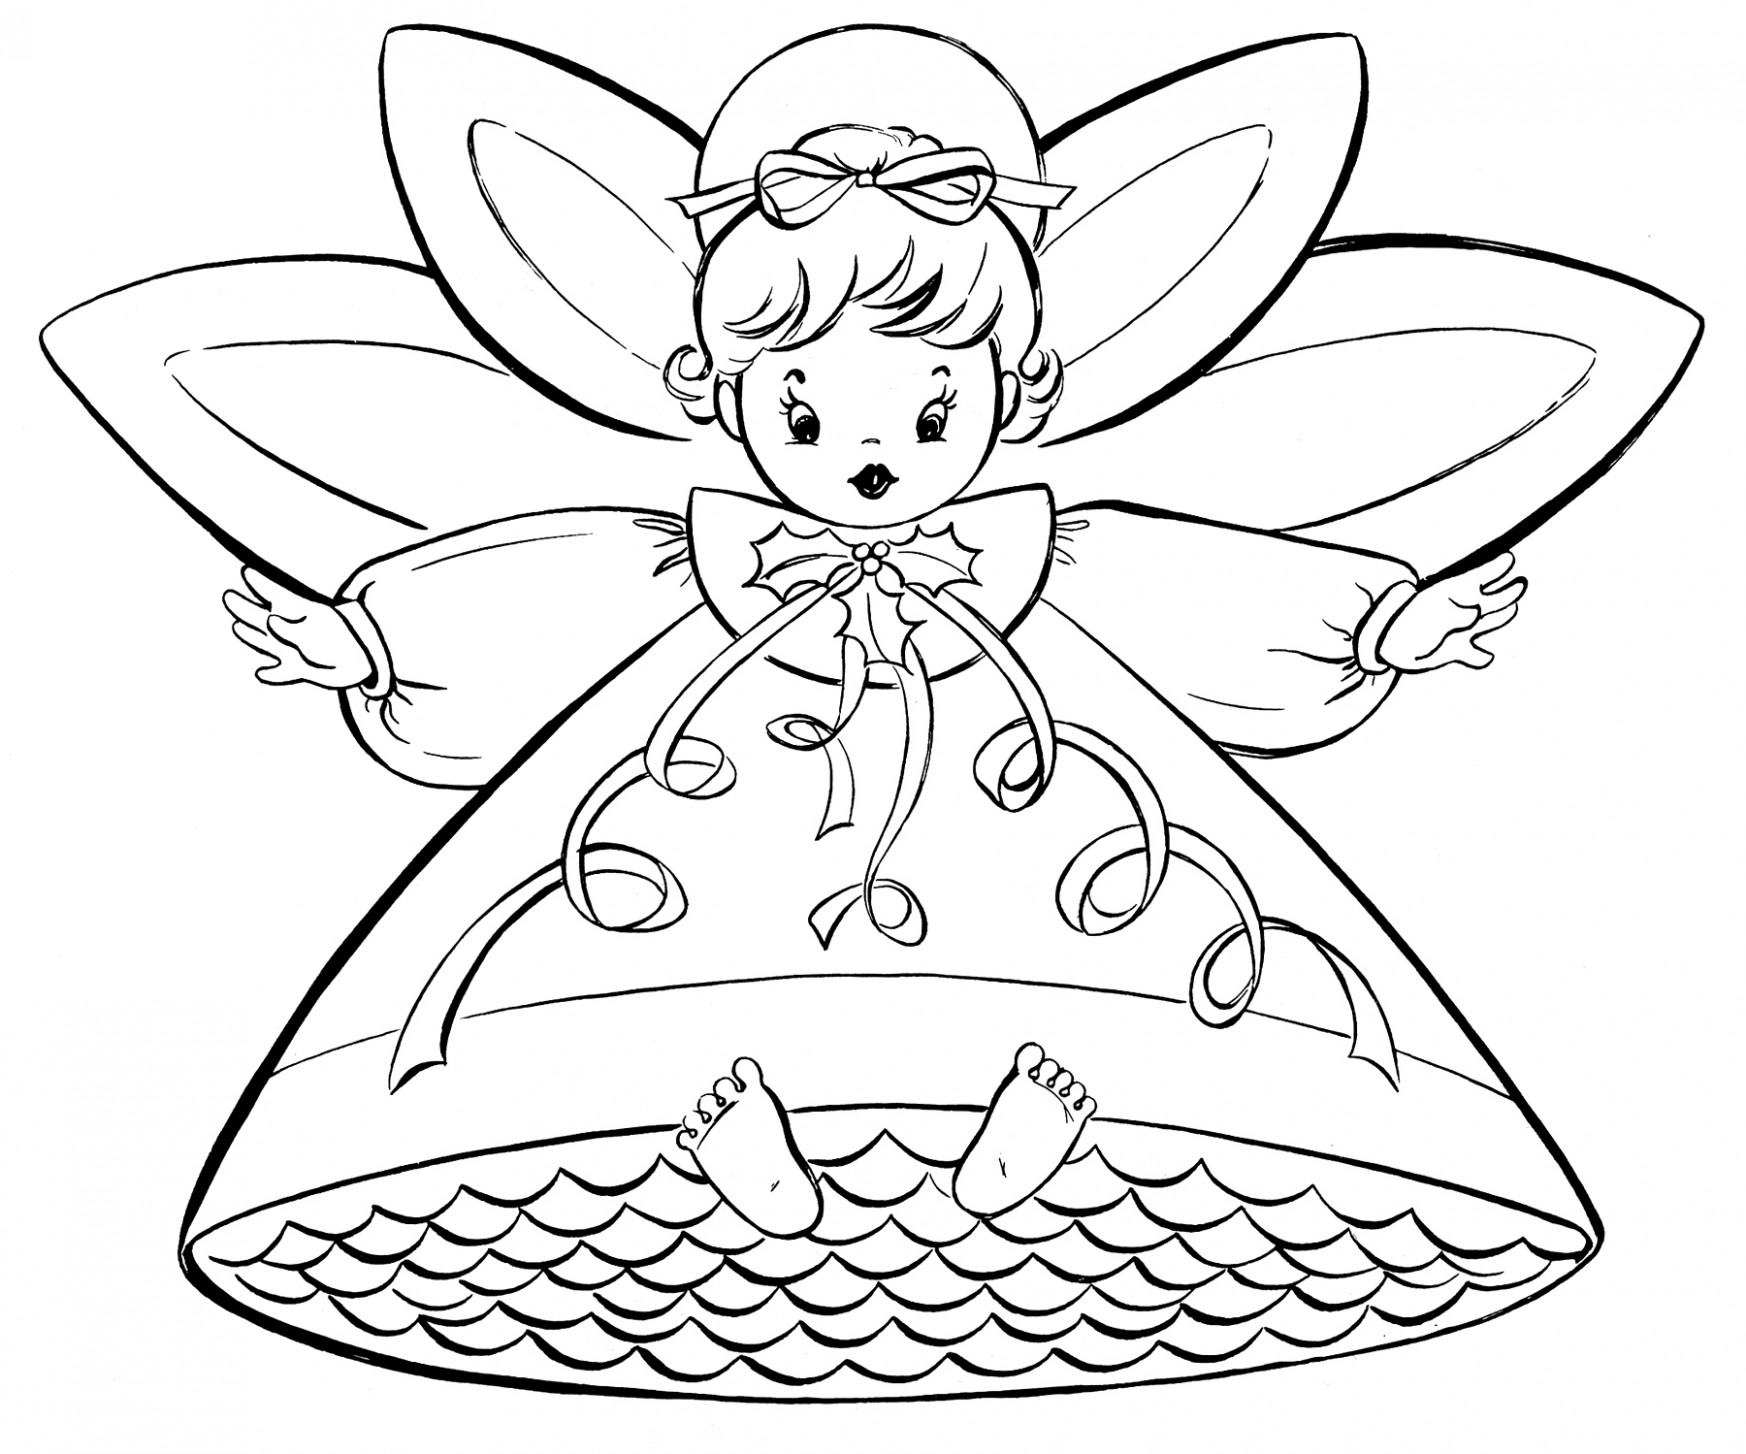 Free Christmas Coloring Pages – Retro Angels – The Graphics Fairy – Vintage Christmas Coloring Pages